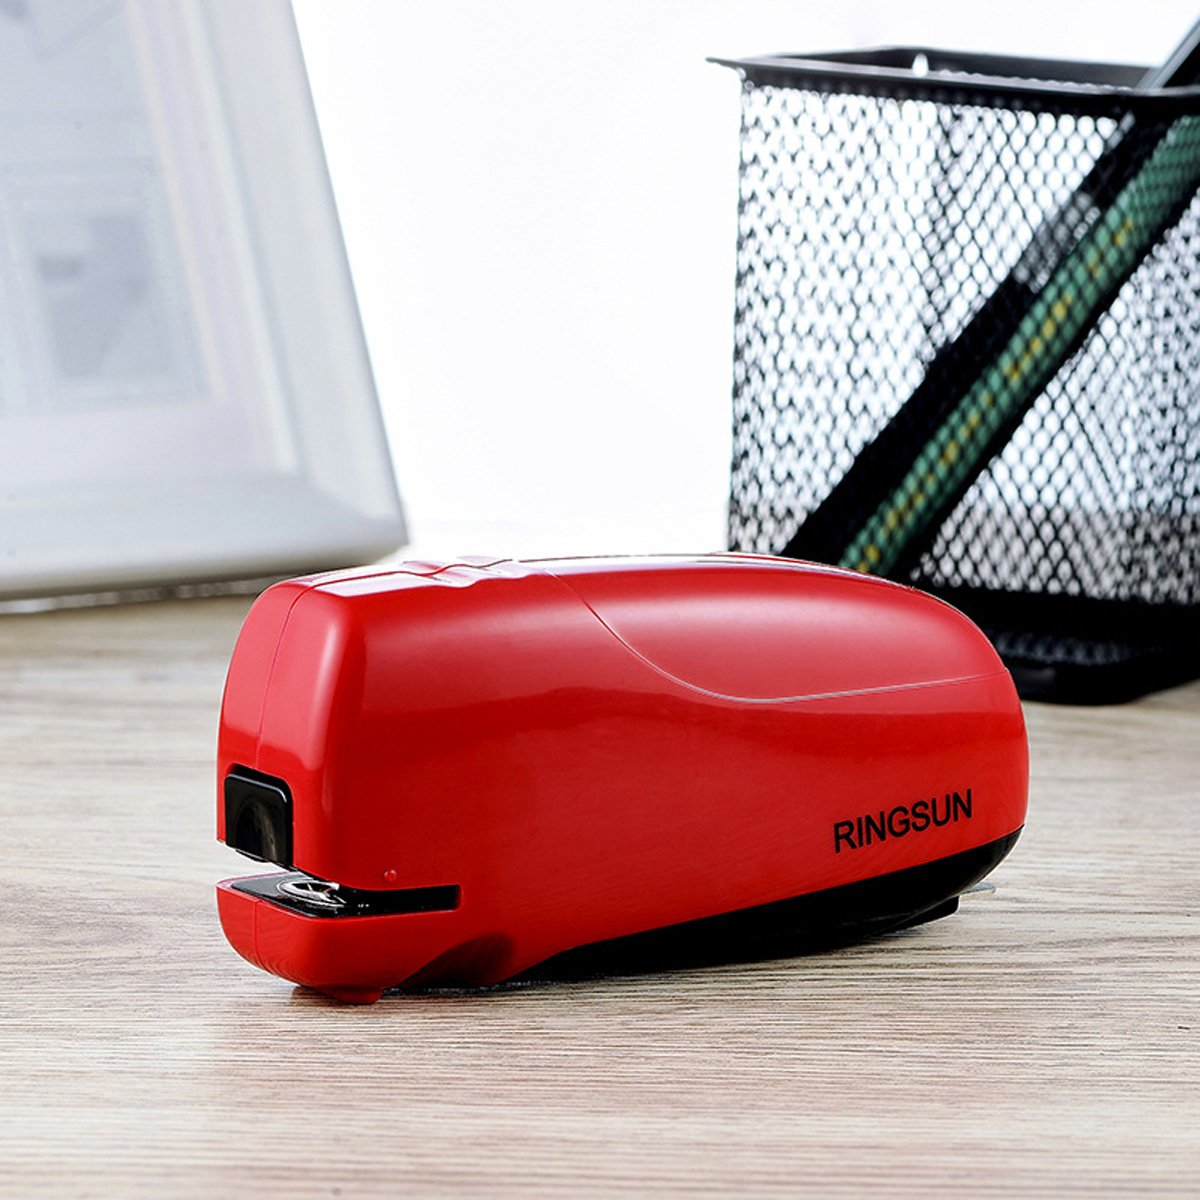 RINGSUN Electric Stapler Automatic 10 Sheets Capacity AC USB Power Or Battery Office School Home Use by RINGSUN (Image #4)